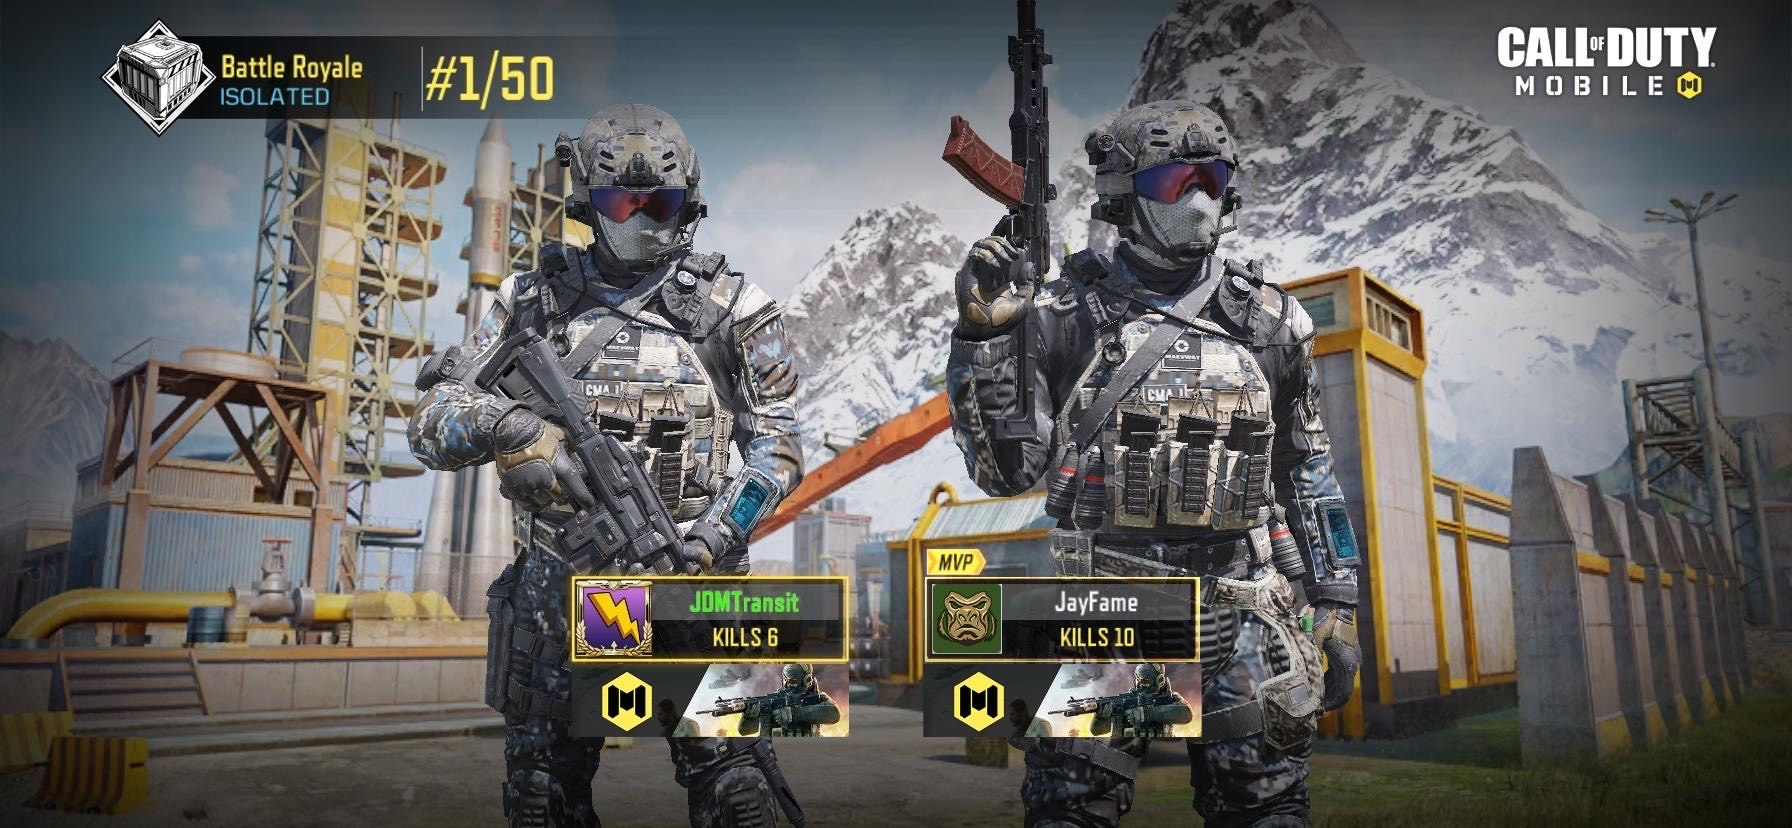 Brothers Set Off Nuke In Warzone